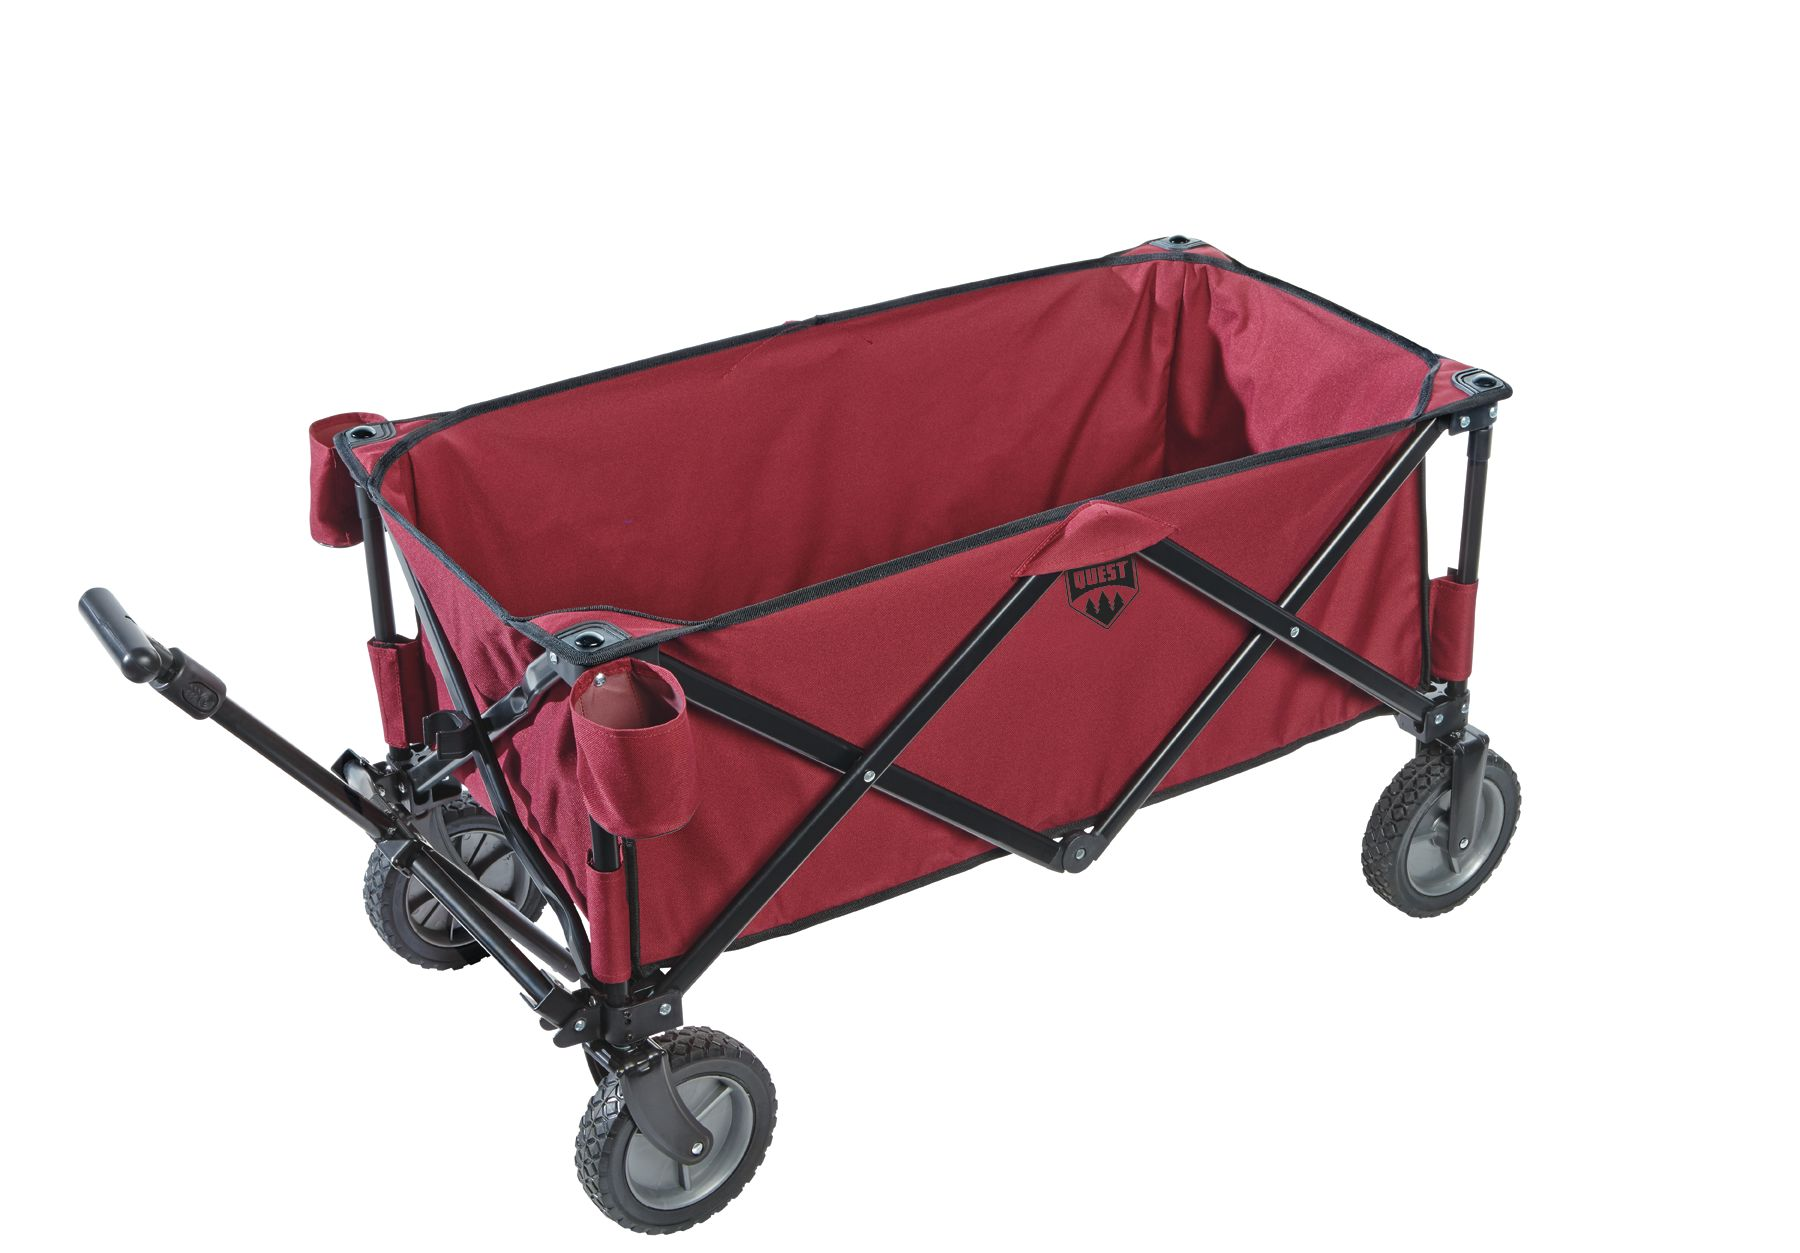 Image result for folding wagons